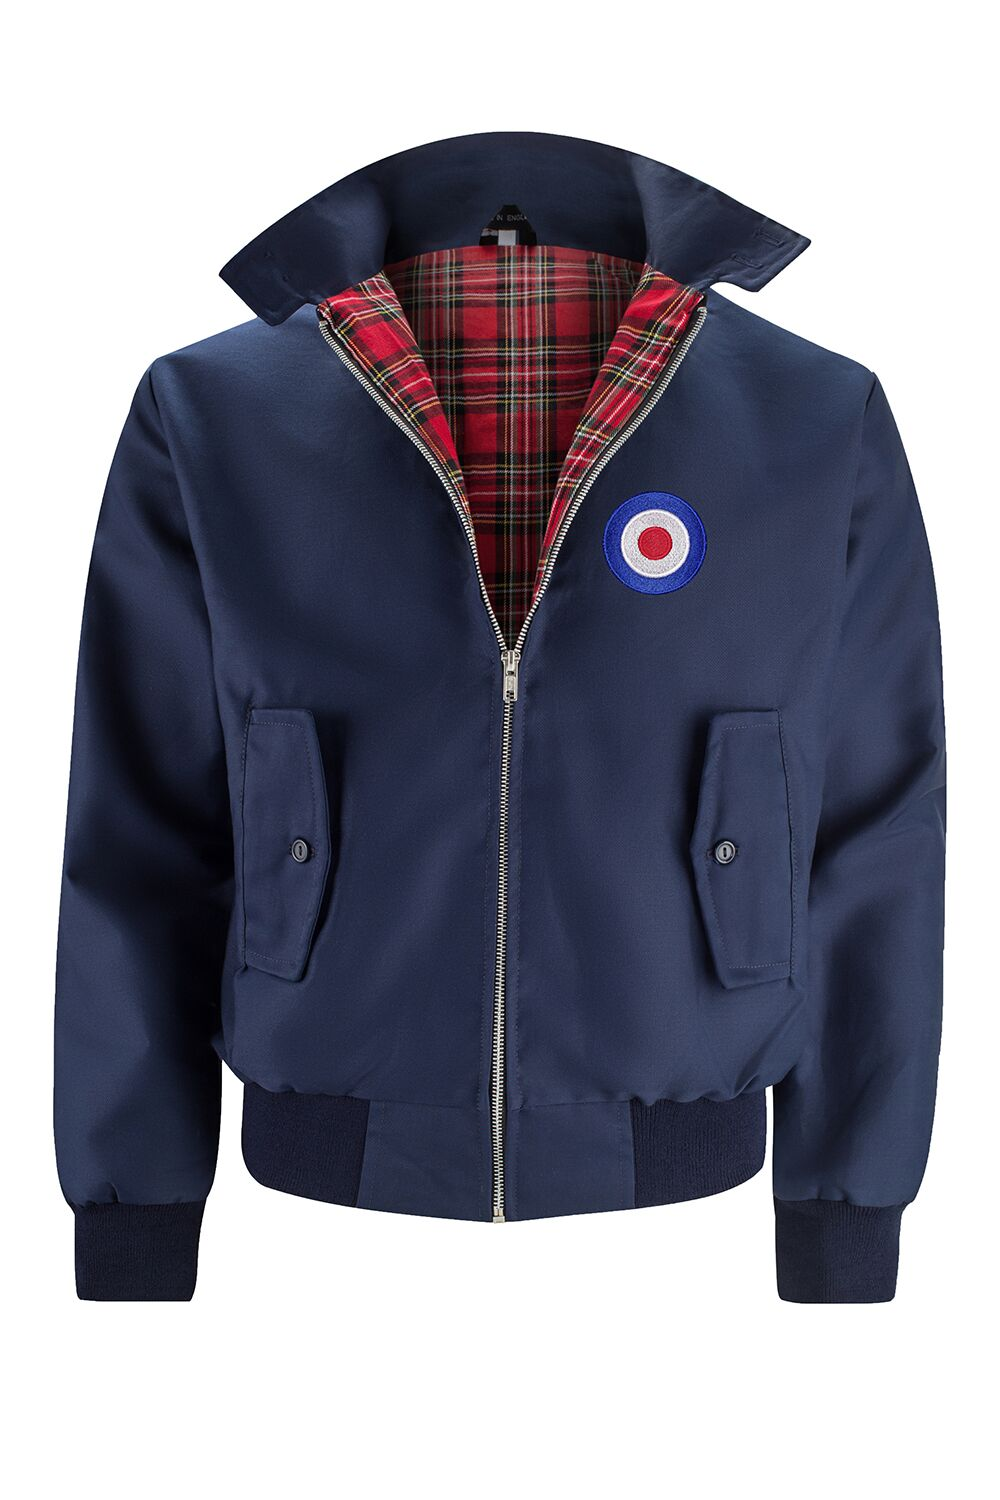 Classic Harrington Jacket - Navy (with MOD badge)